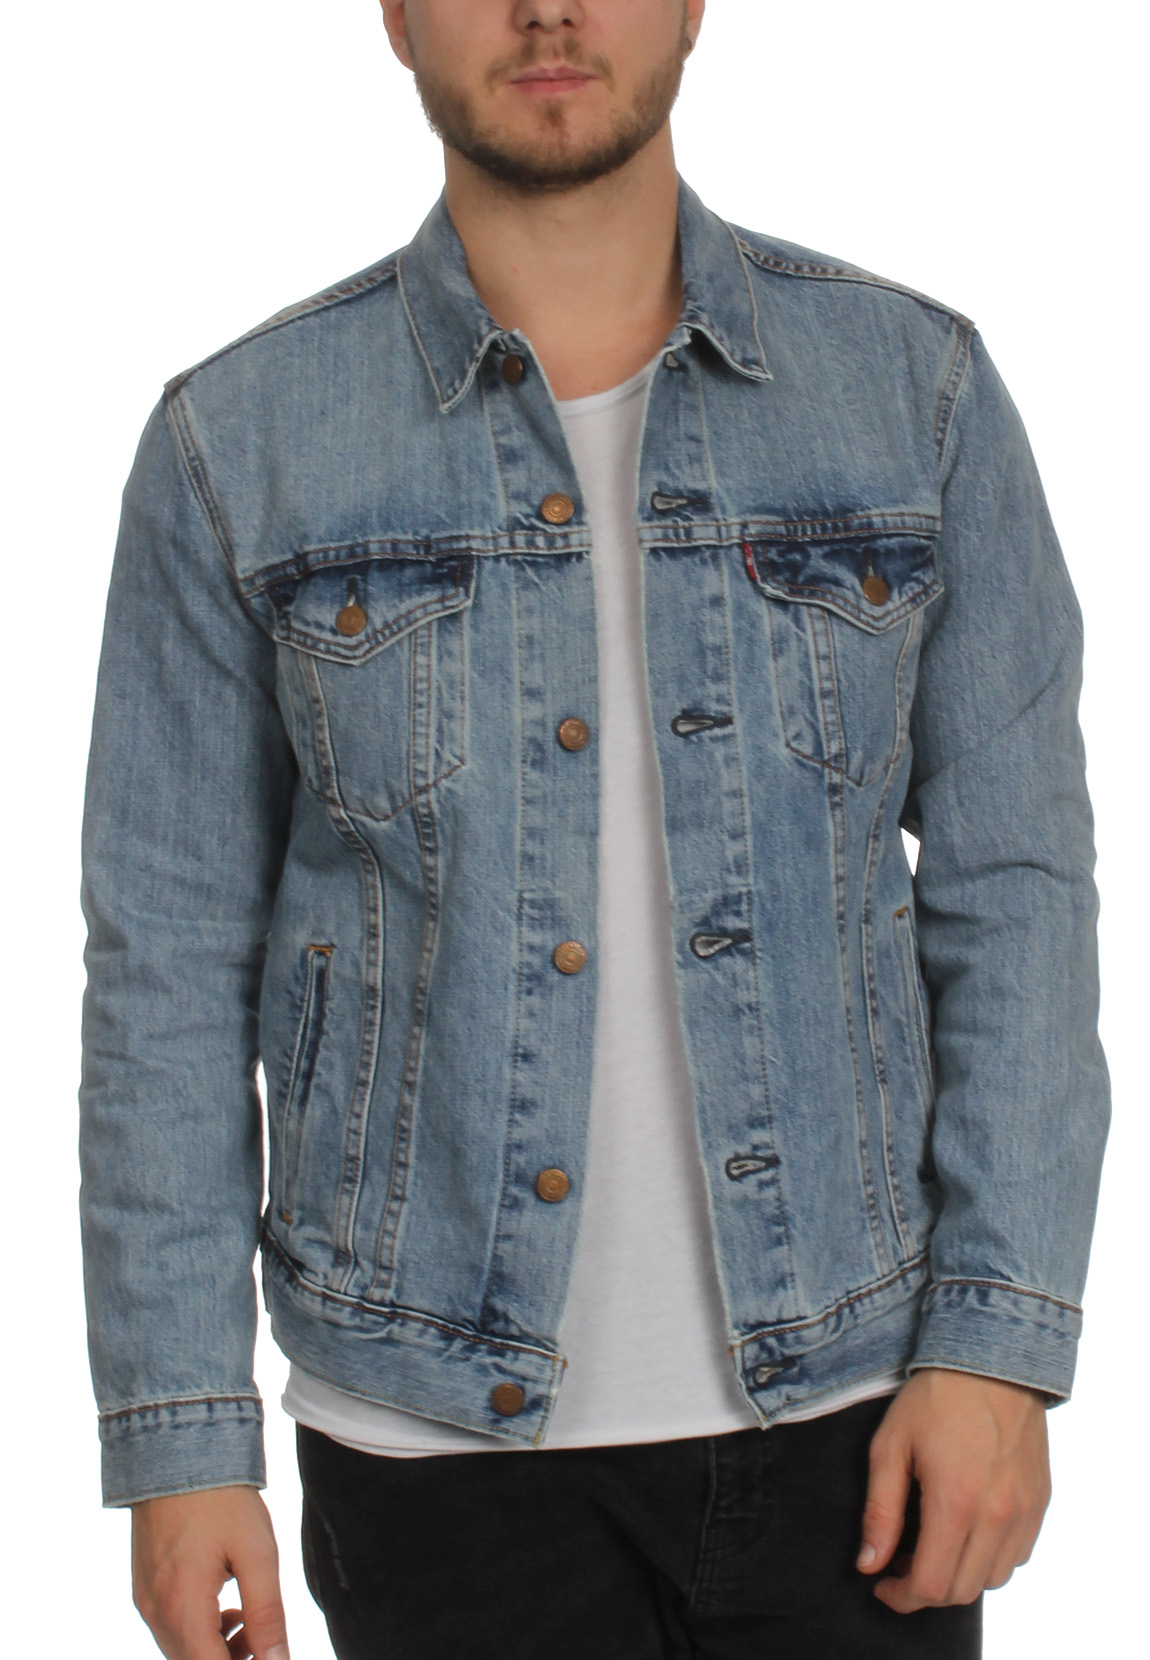 Levis rote jacke